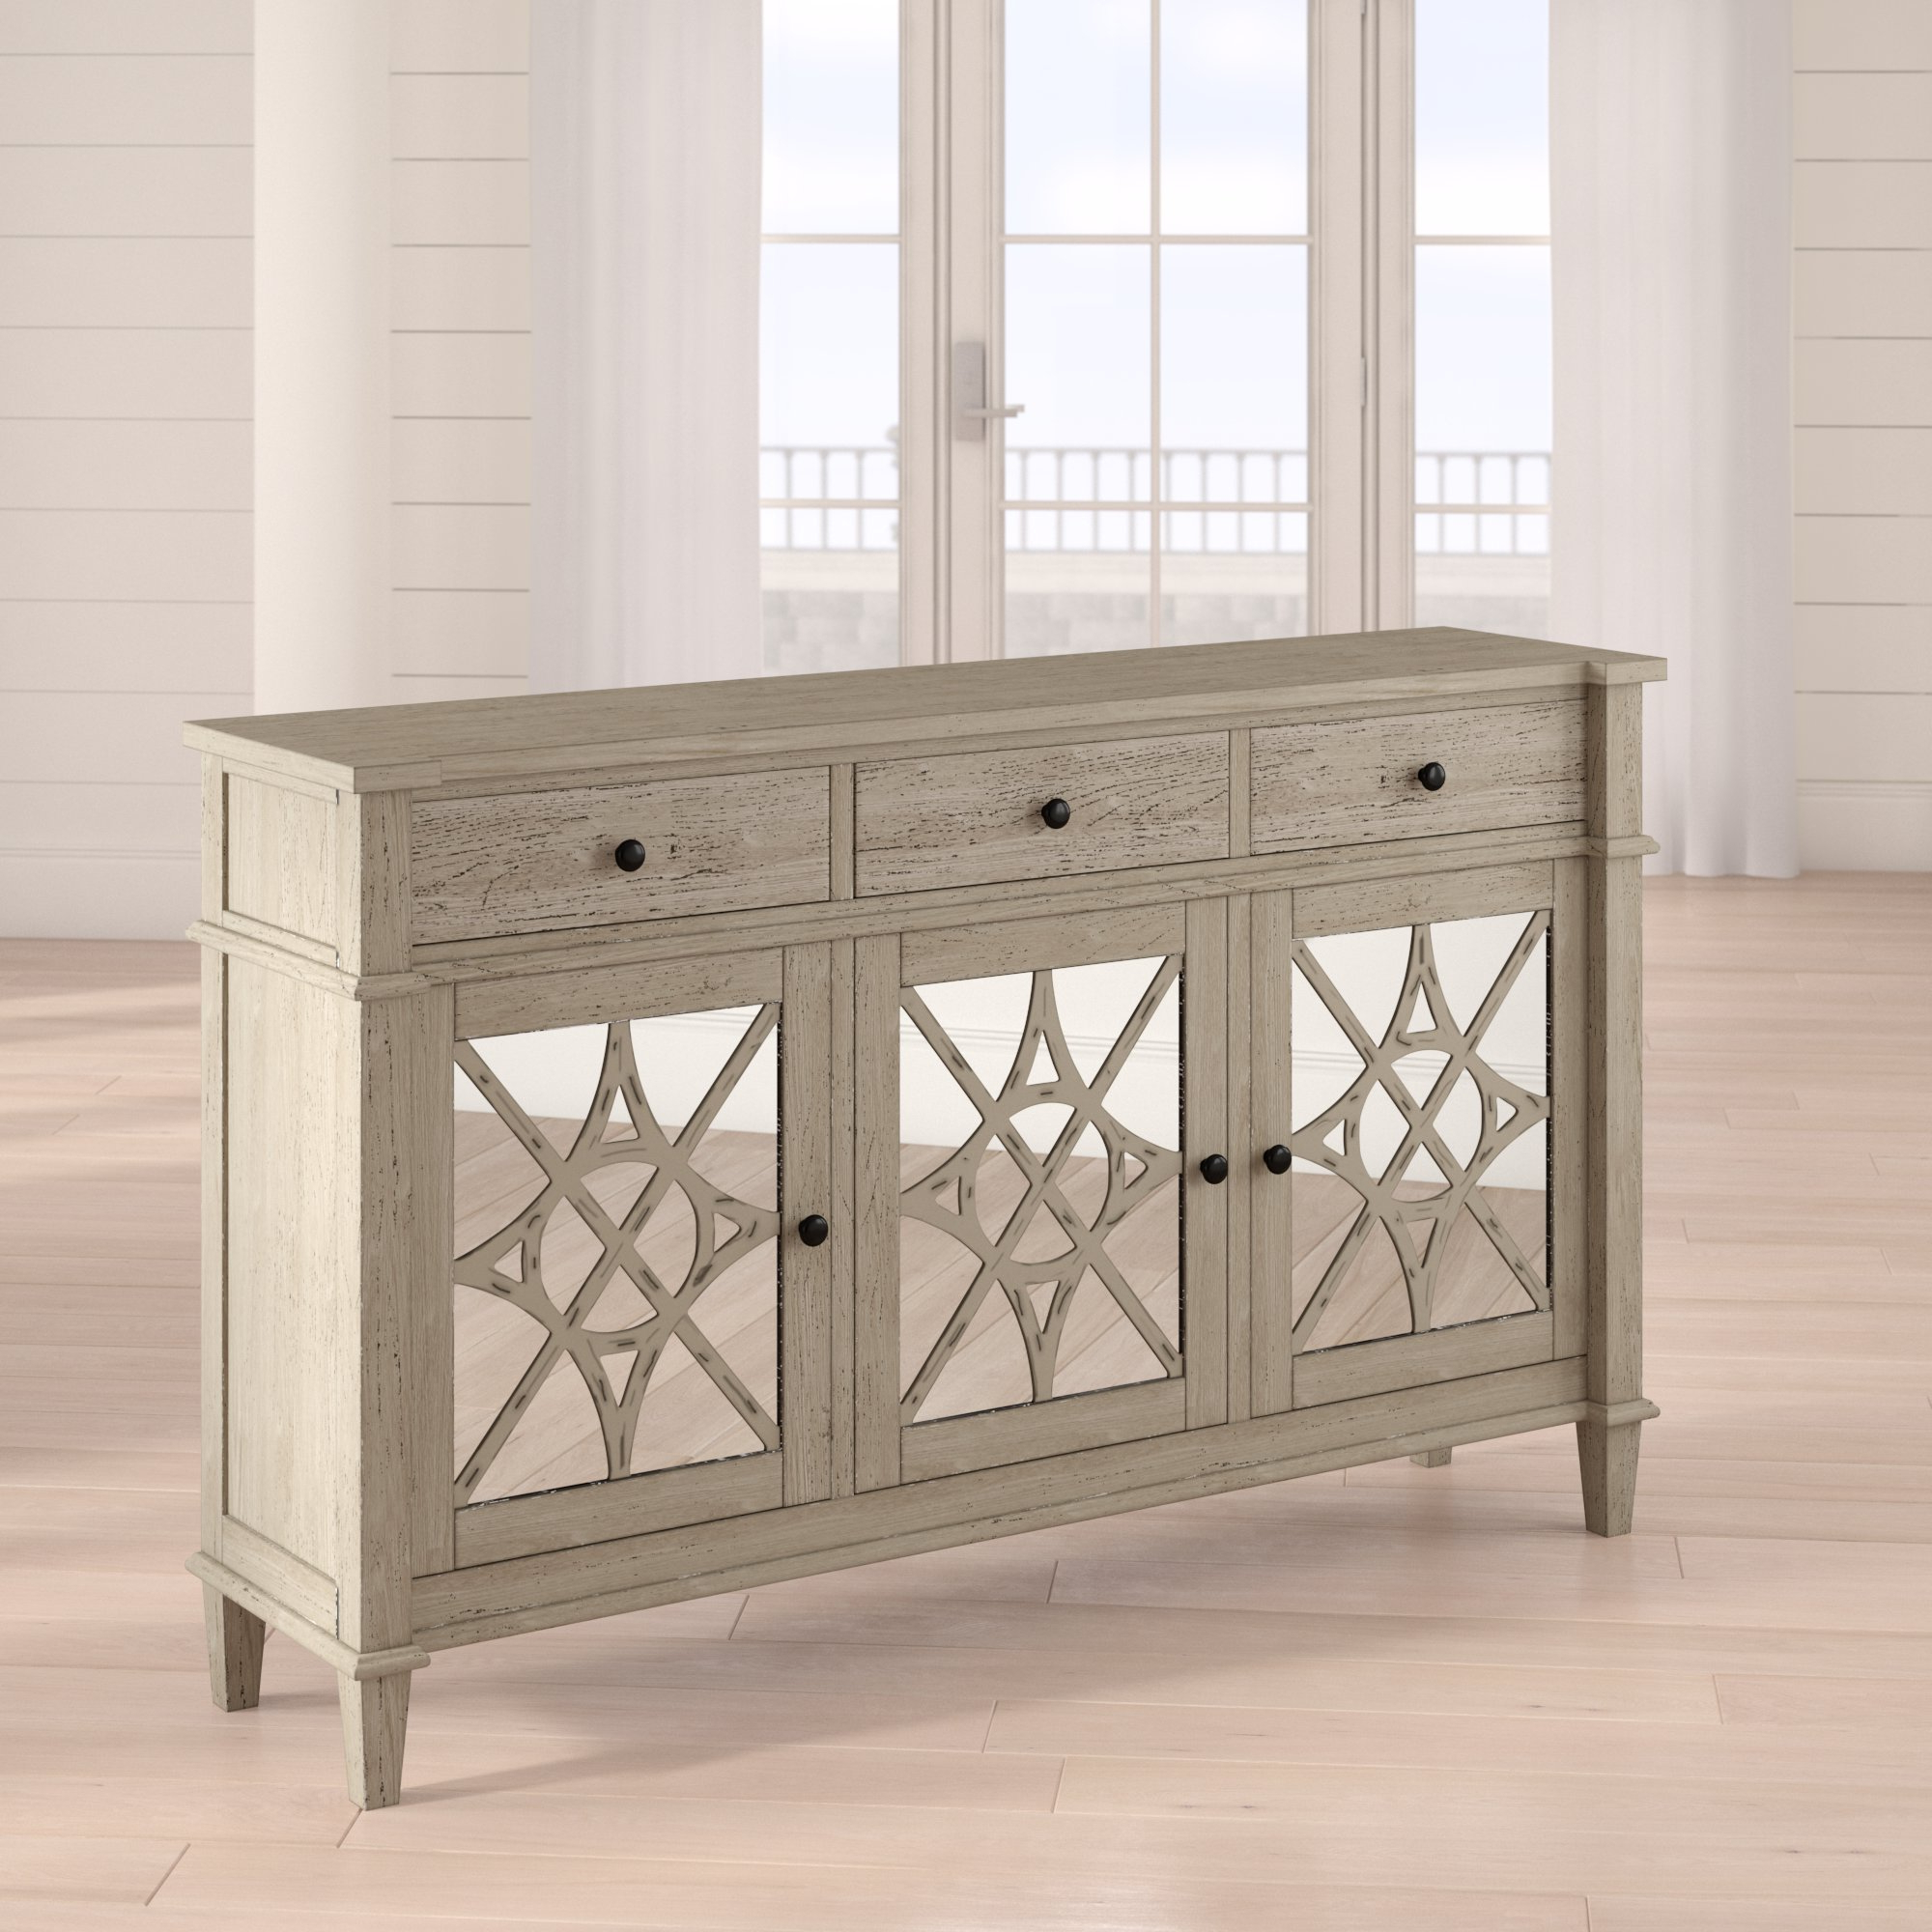 """Rosecliff Heights Parmelee Tv Stand For Tvs Up To 60"""" With Fireplace Pertaining To Most Recently Released Parmelee Tv Stands For Tvs Up To 65"""" (View 7 of 20)"""